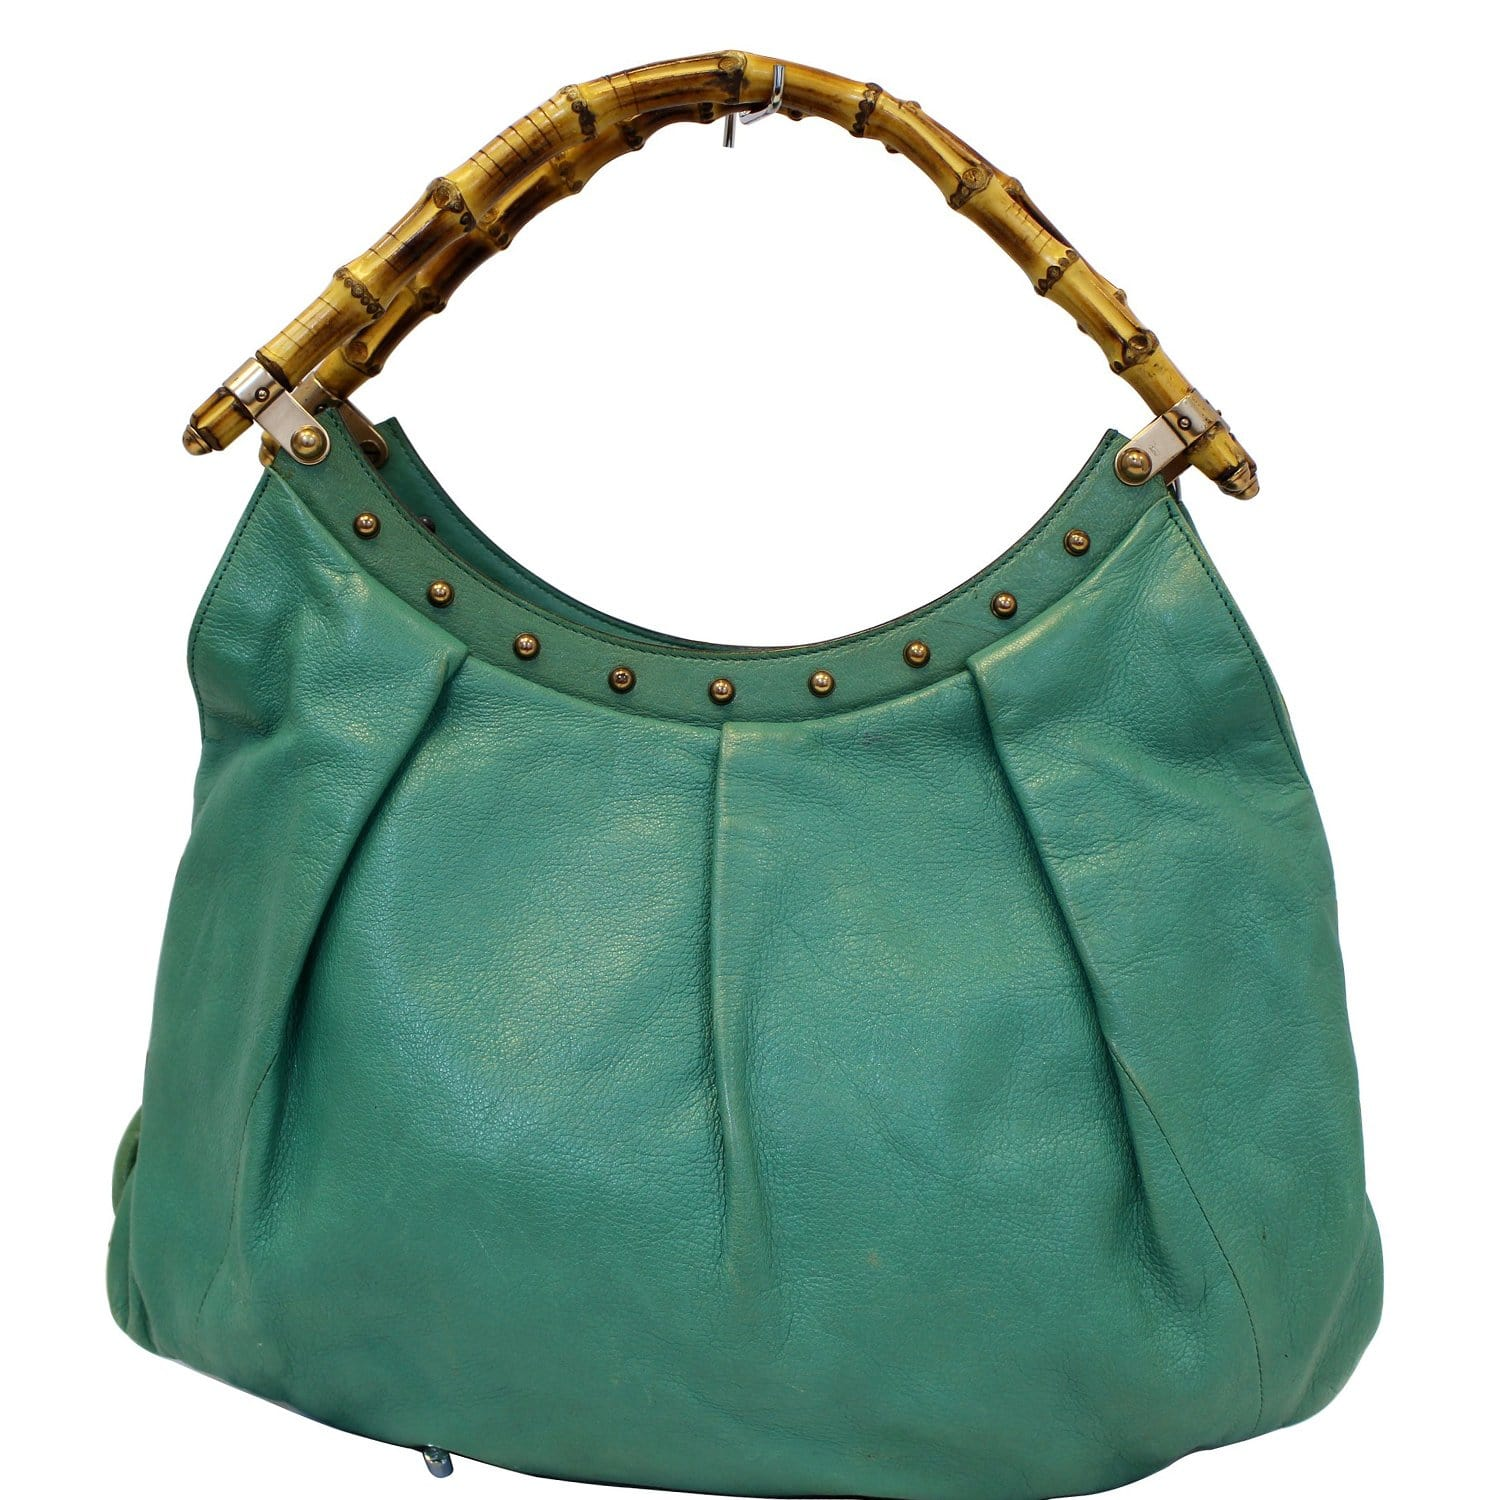 549745c85cf2 GUCCI Green Leather Bamboo Top Handle Shoulder Bag 124293